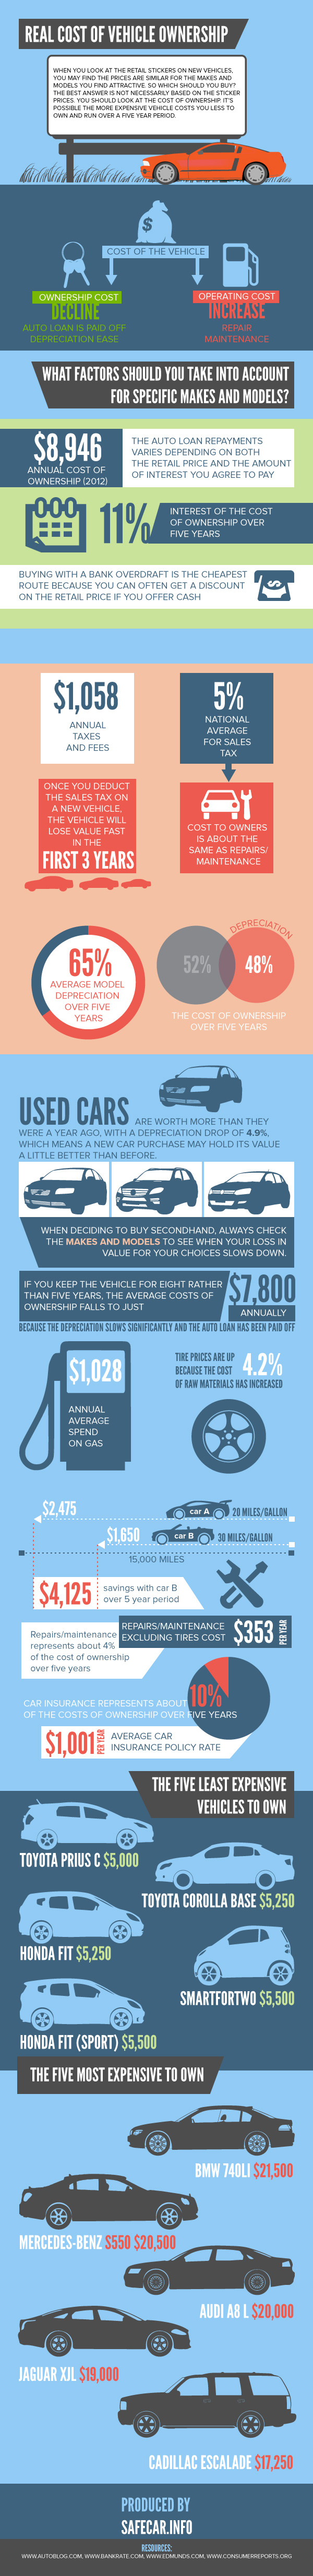 Real Cost of Vehicle Ownership